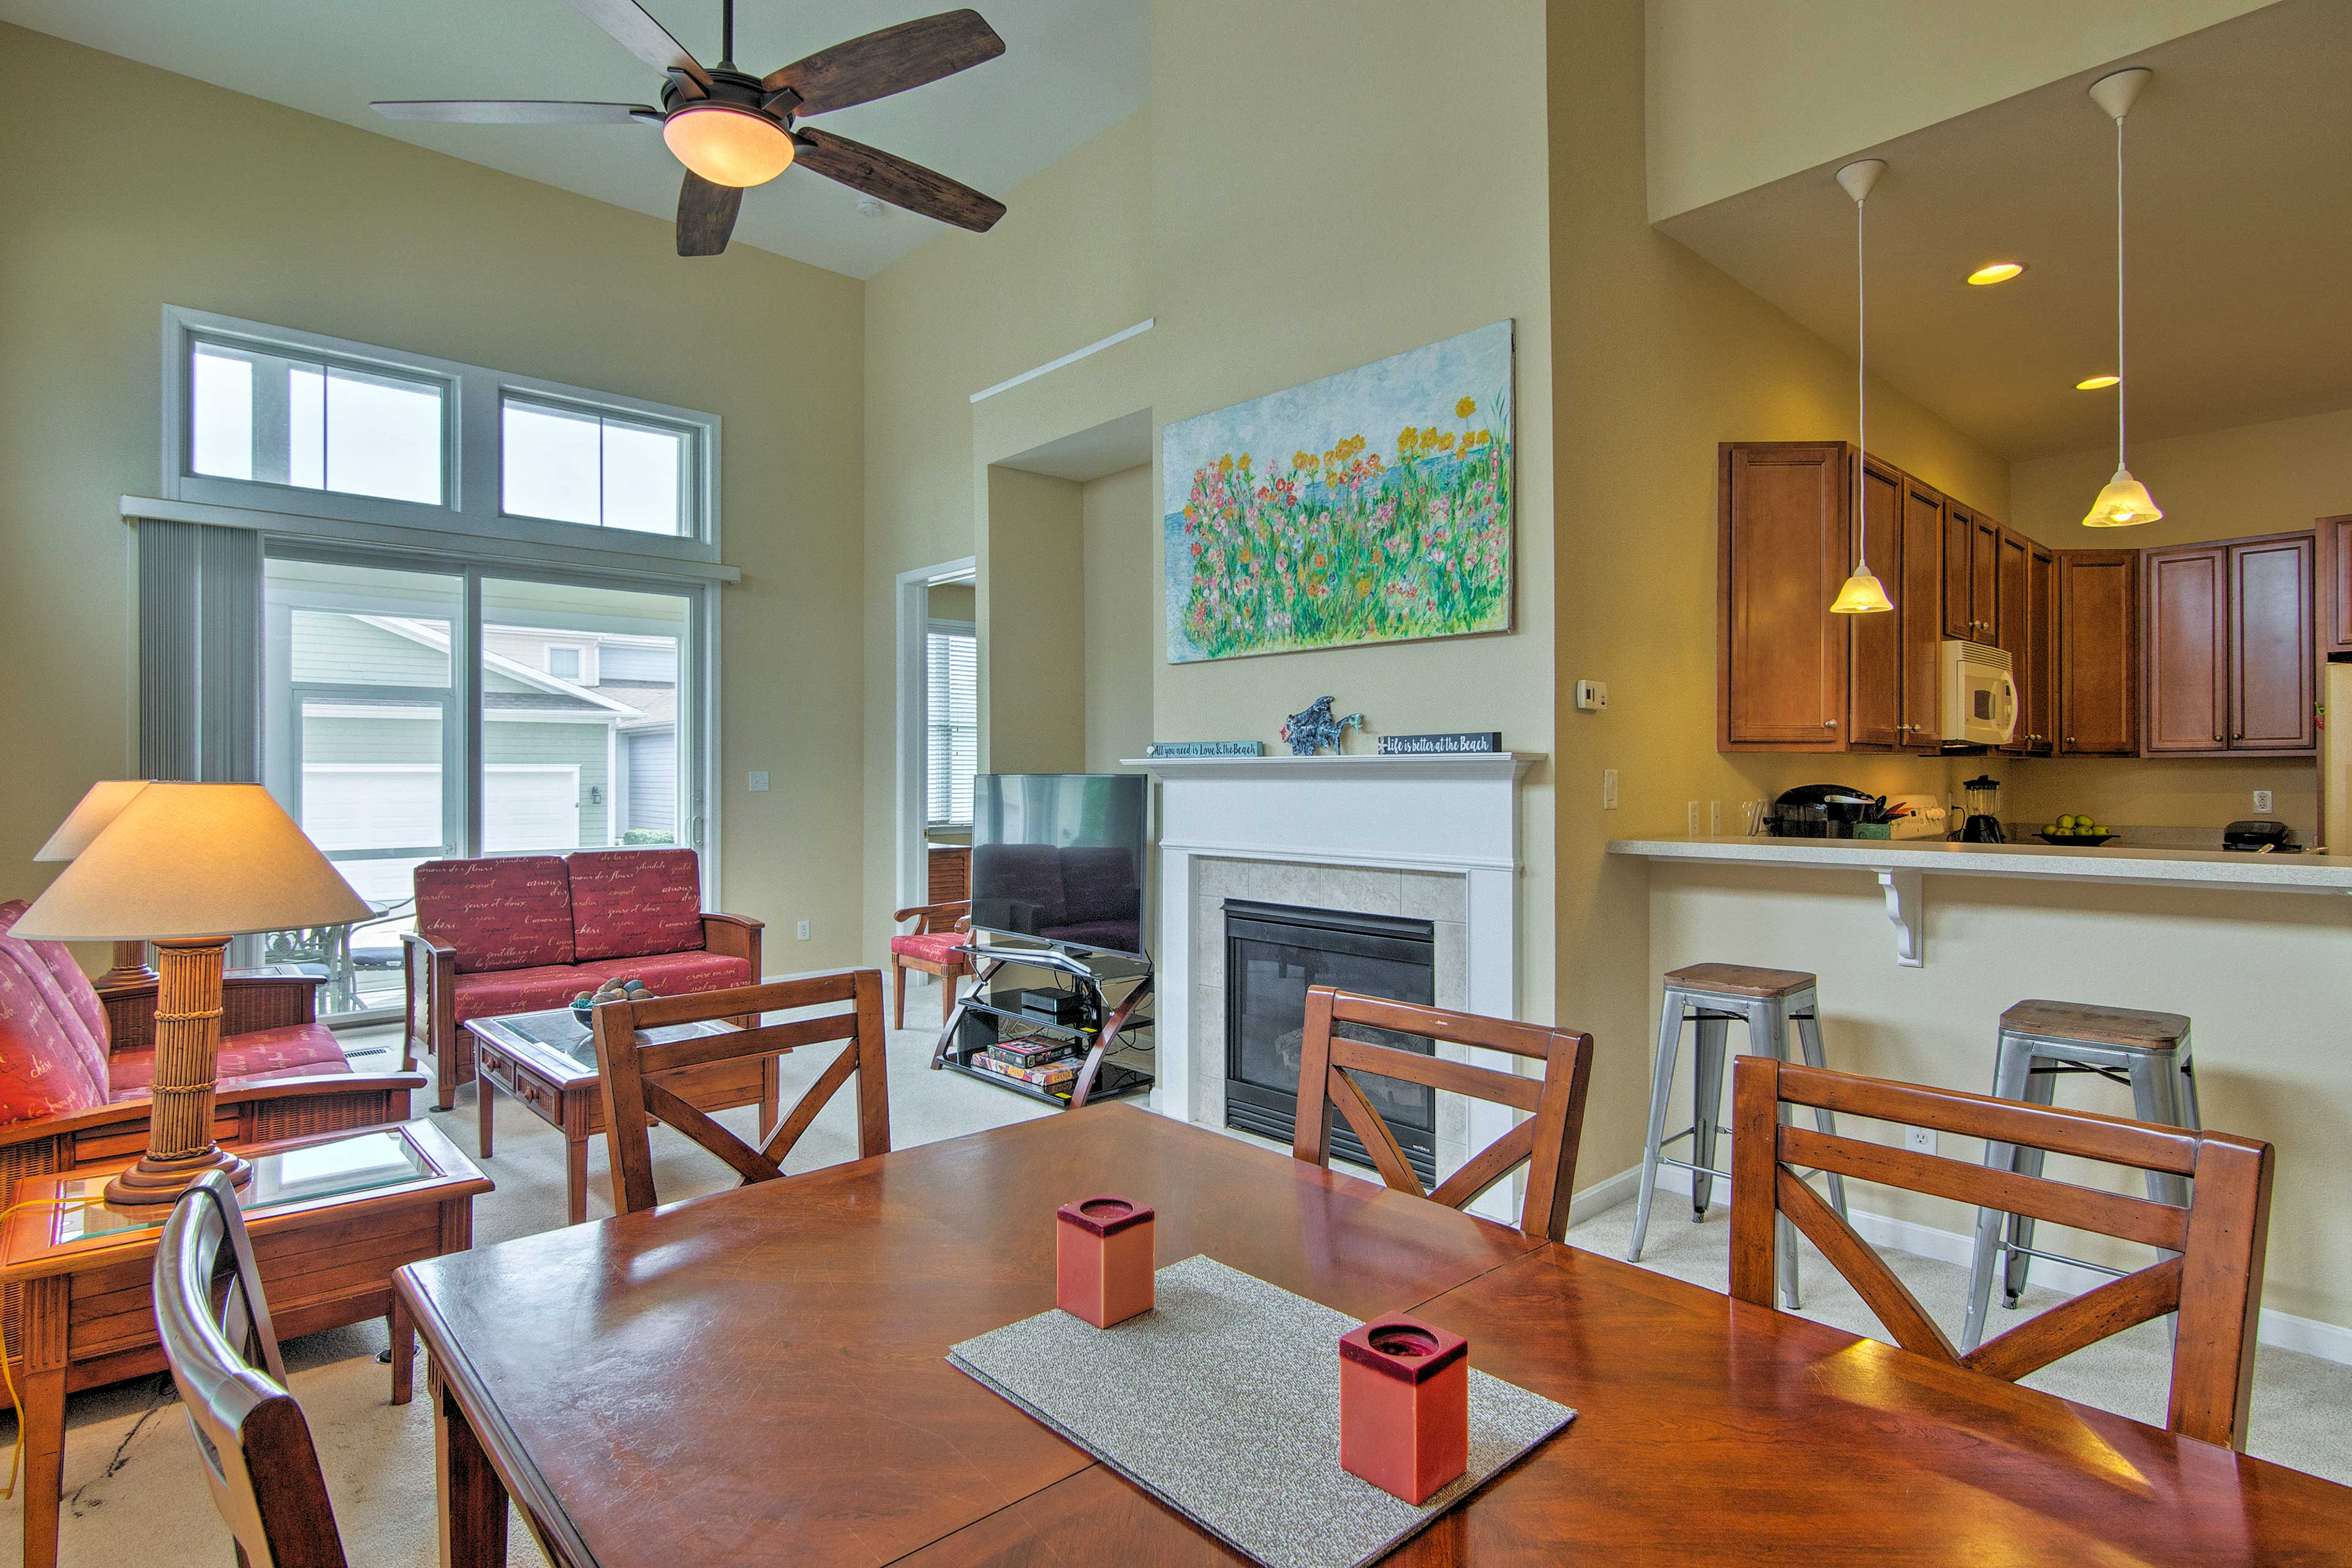 The open floor plan seamlessly connects the living room, dining area and kitchen.